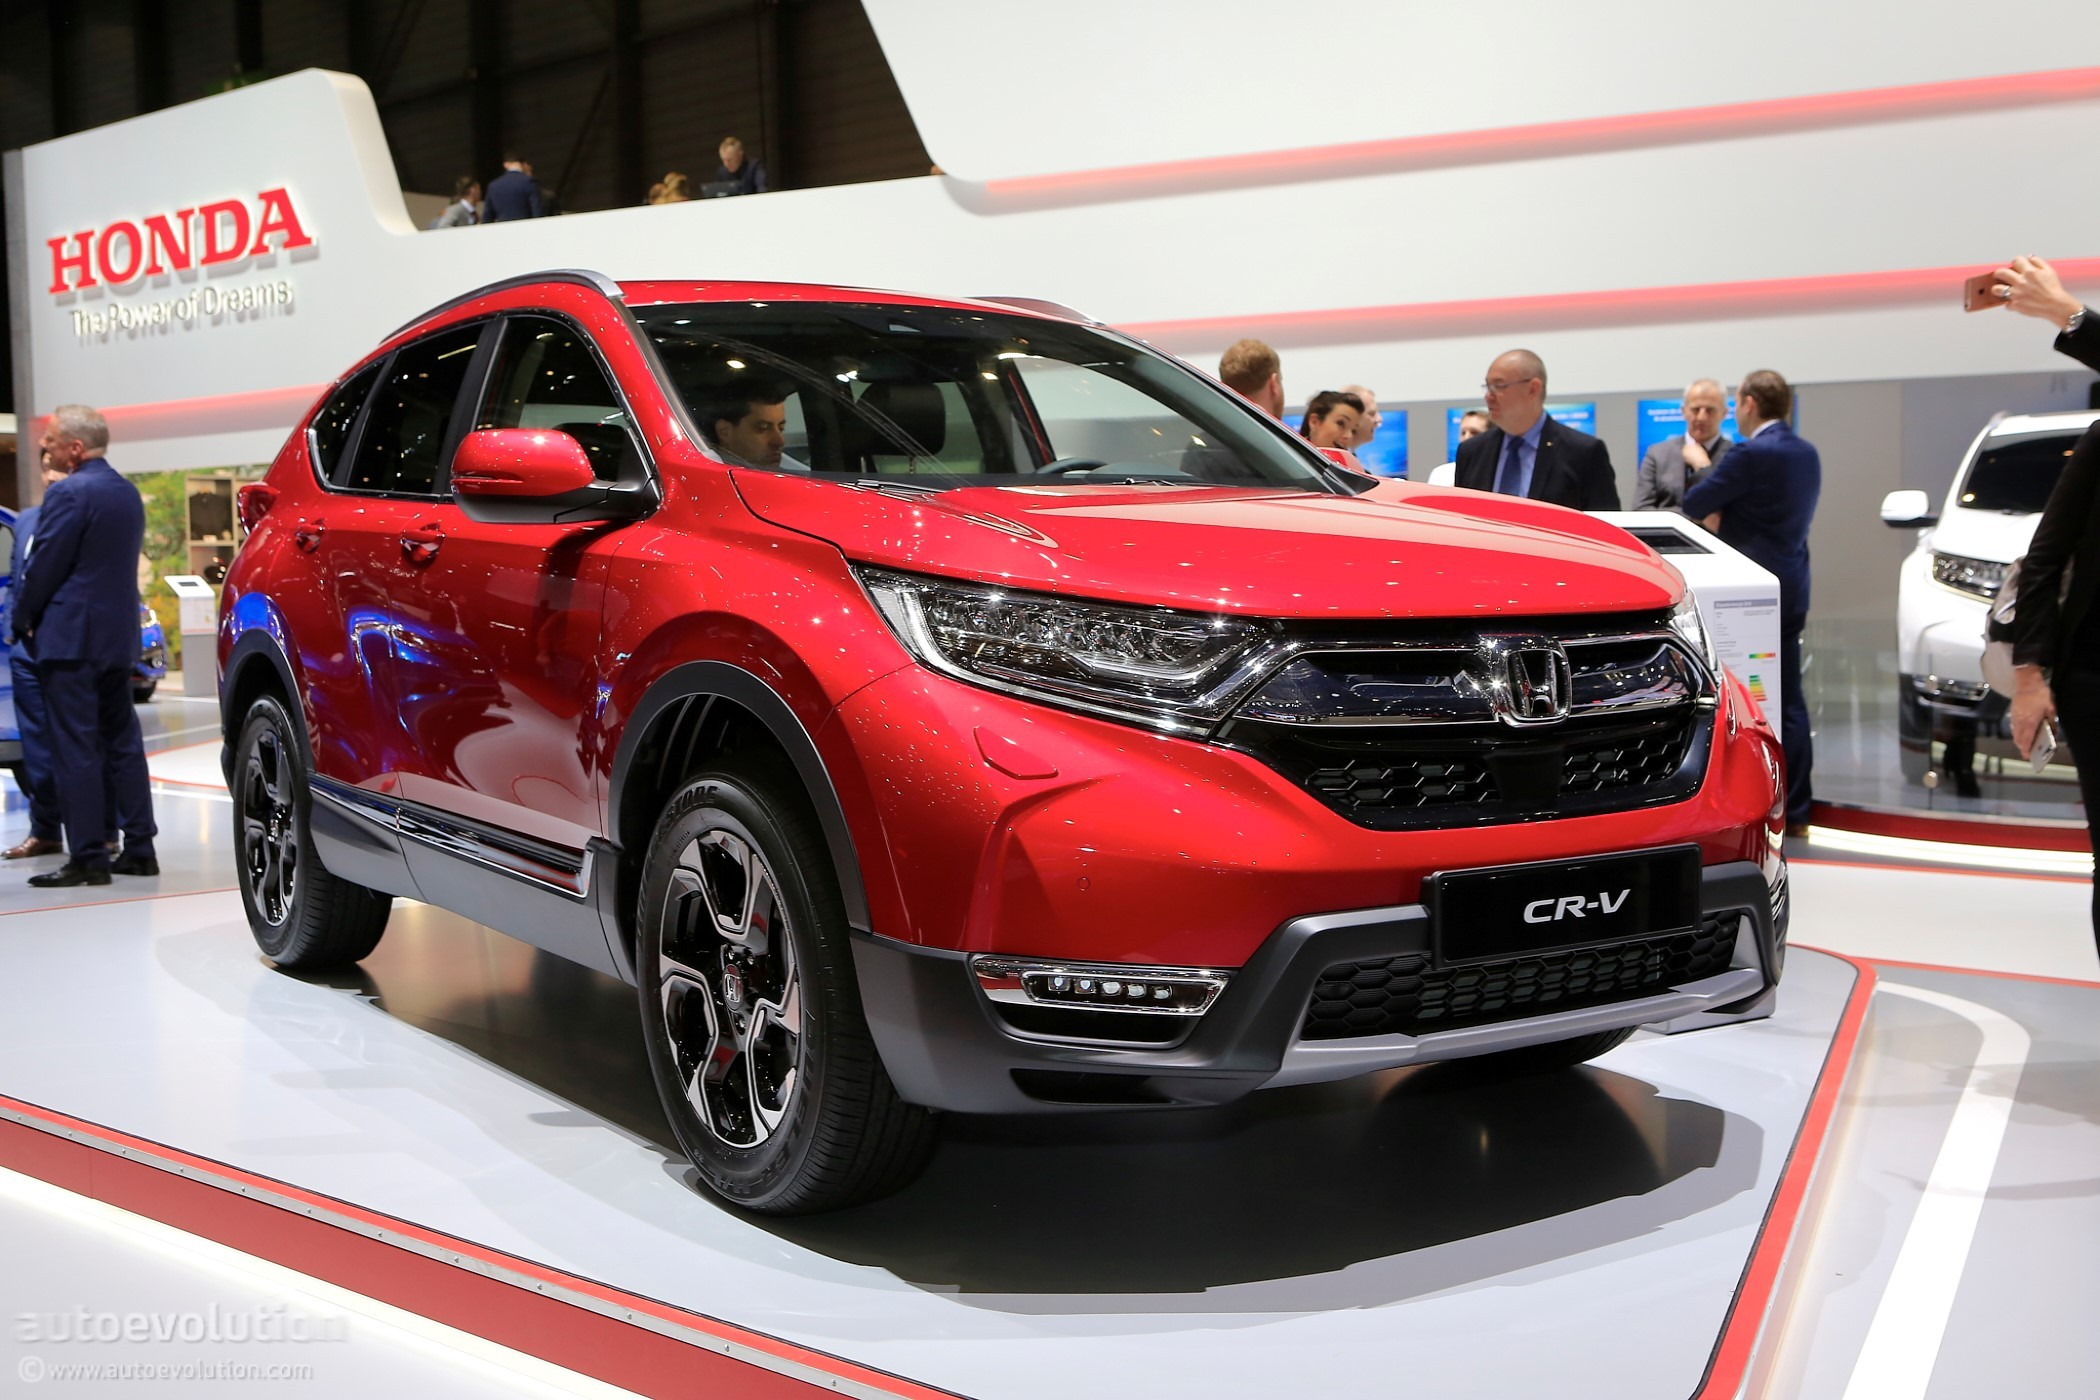 Honda's Sales in India to Account for 30% of Global Total by